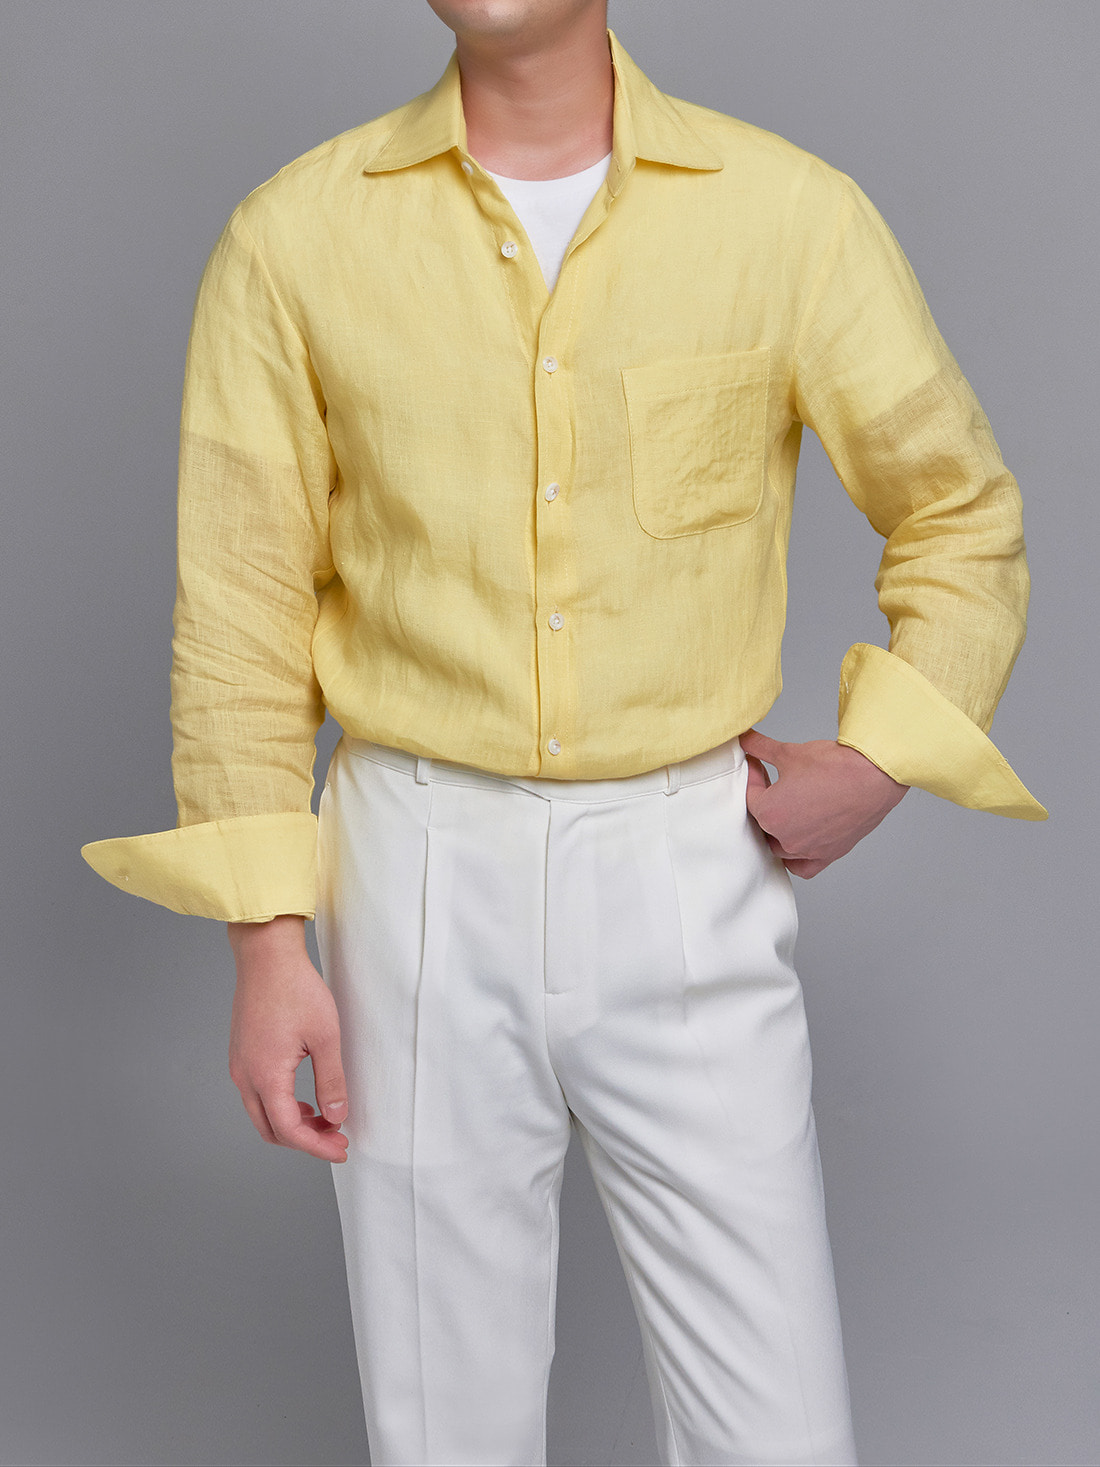 DEVERMAN[DEVERMAN]linen beach shirts (lemon)